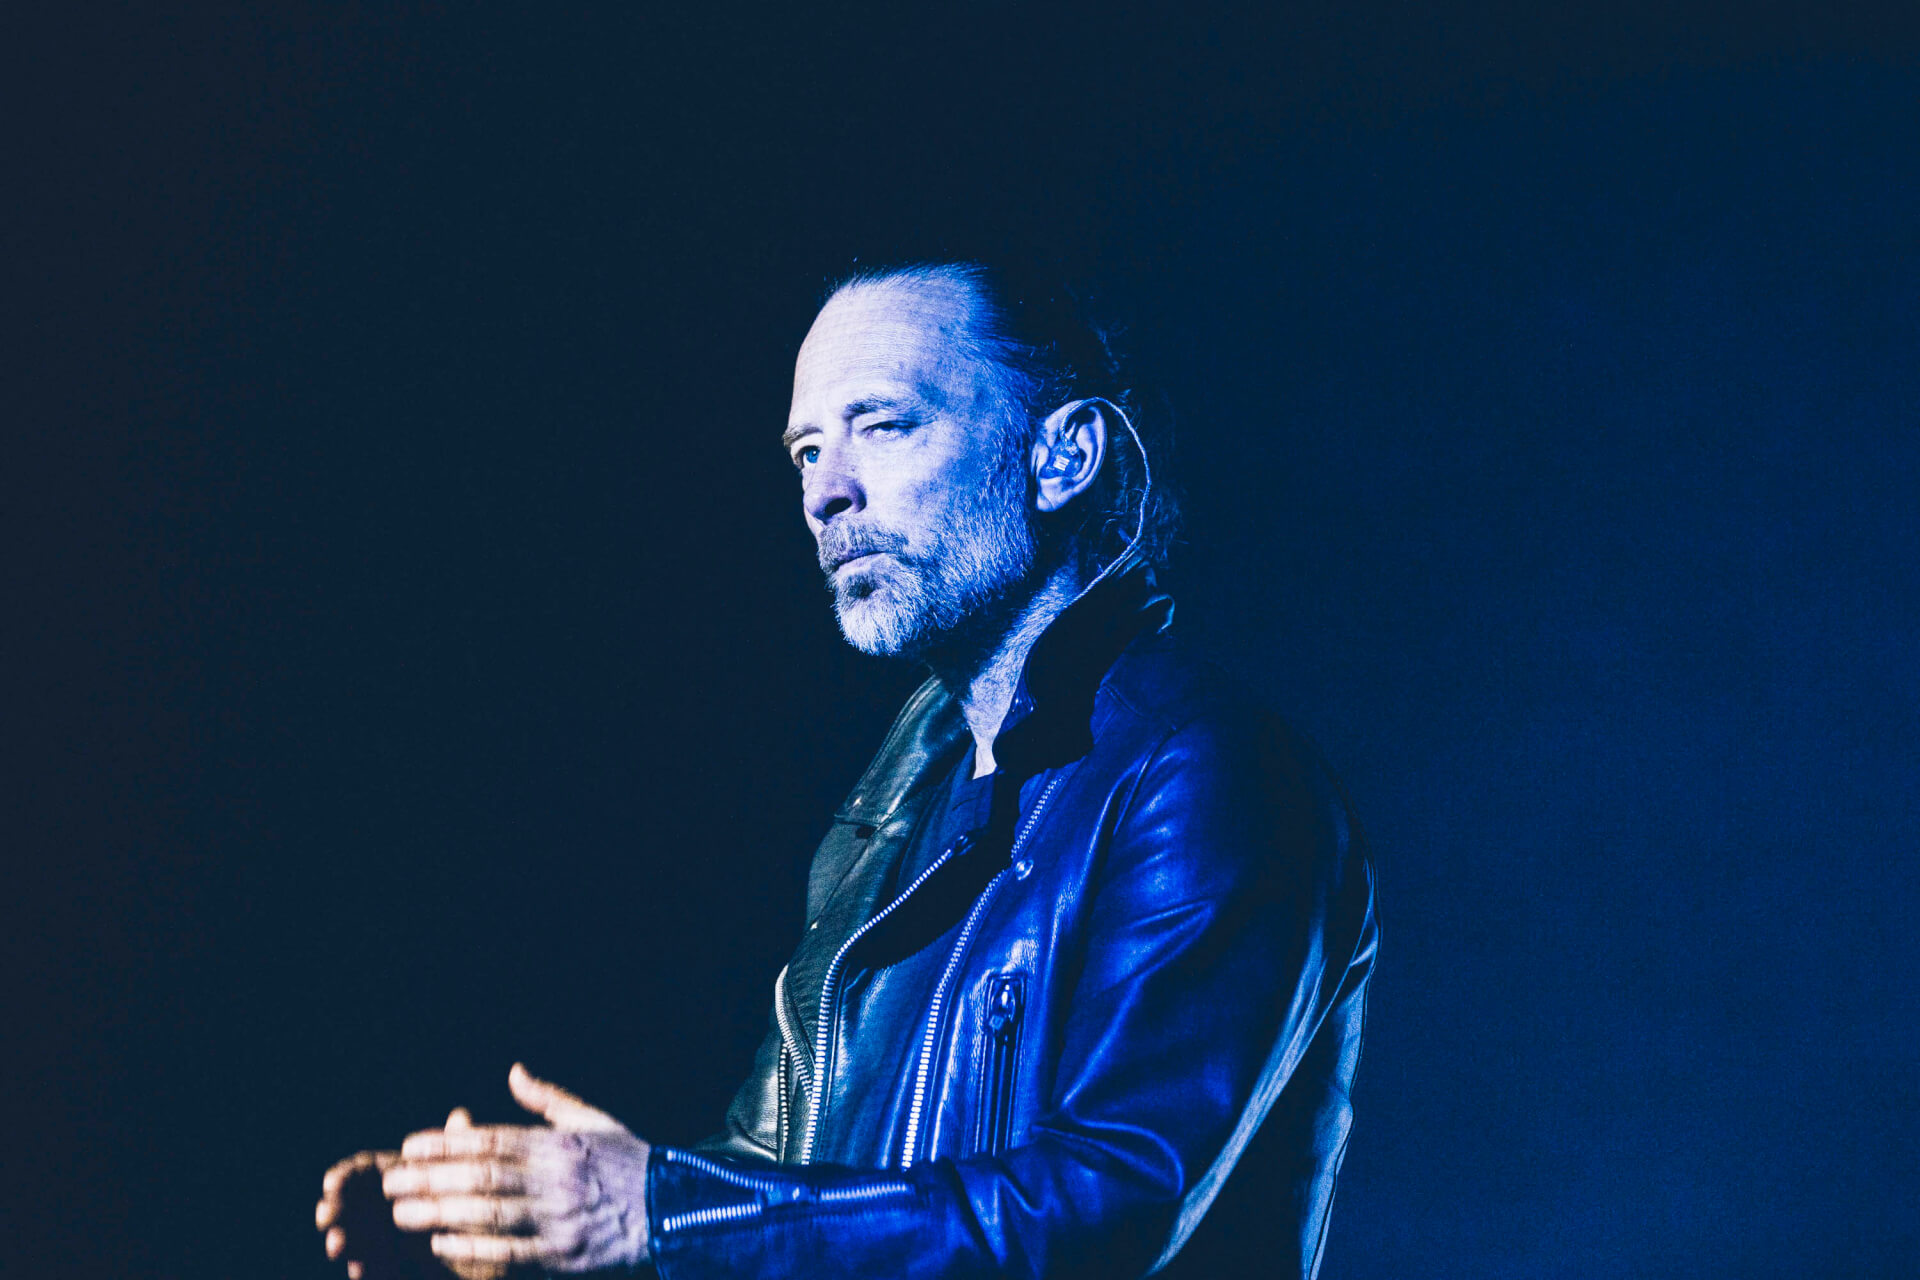 振り返るフジロック2019|THOM YORKE TOMORROW'S MODERN BOXES photo-report190822-thomyorke-2.jpg